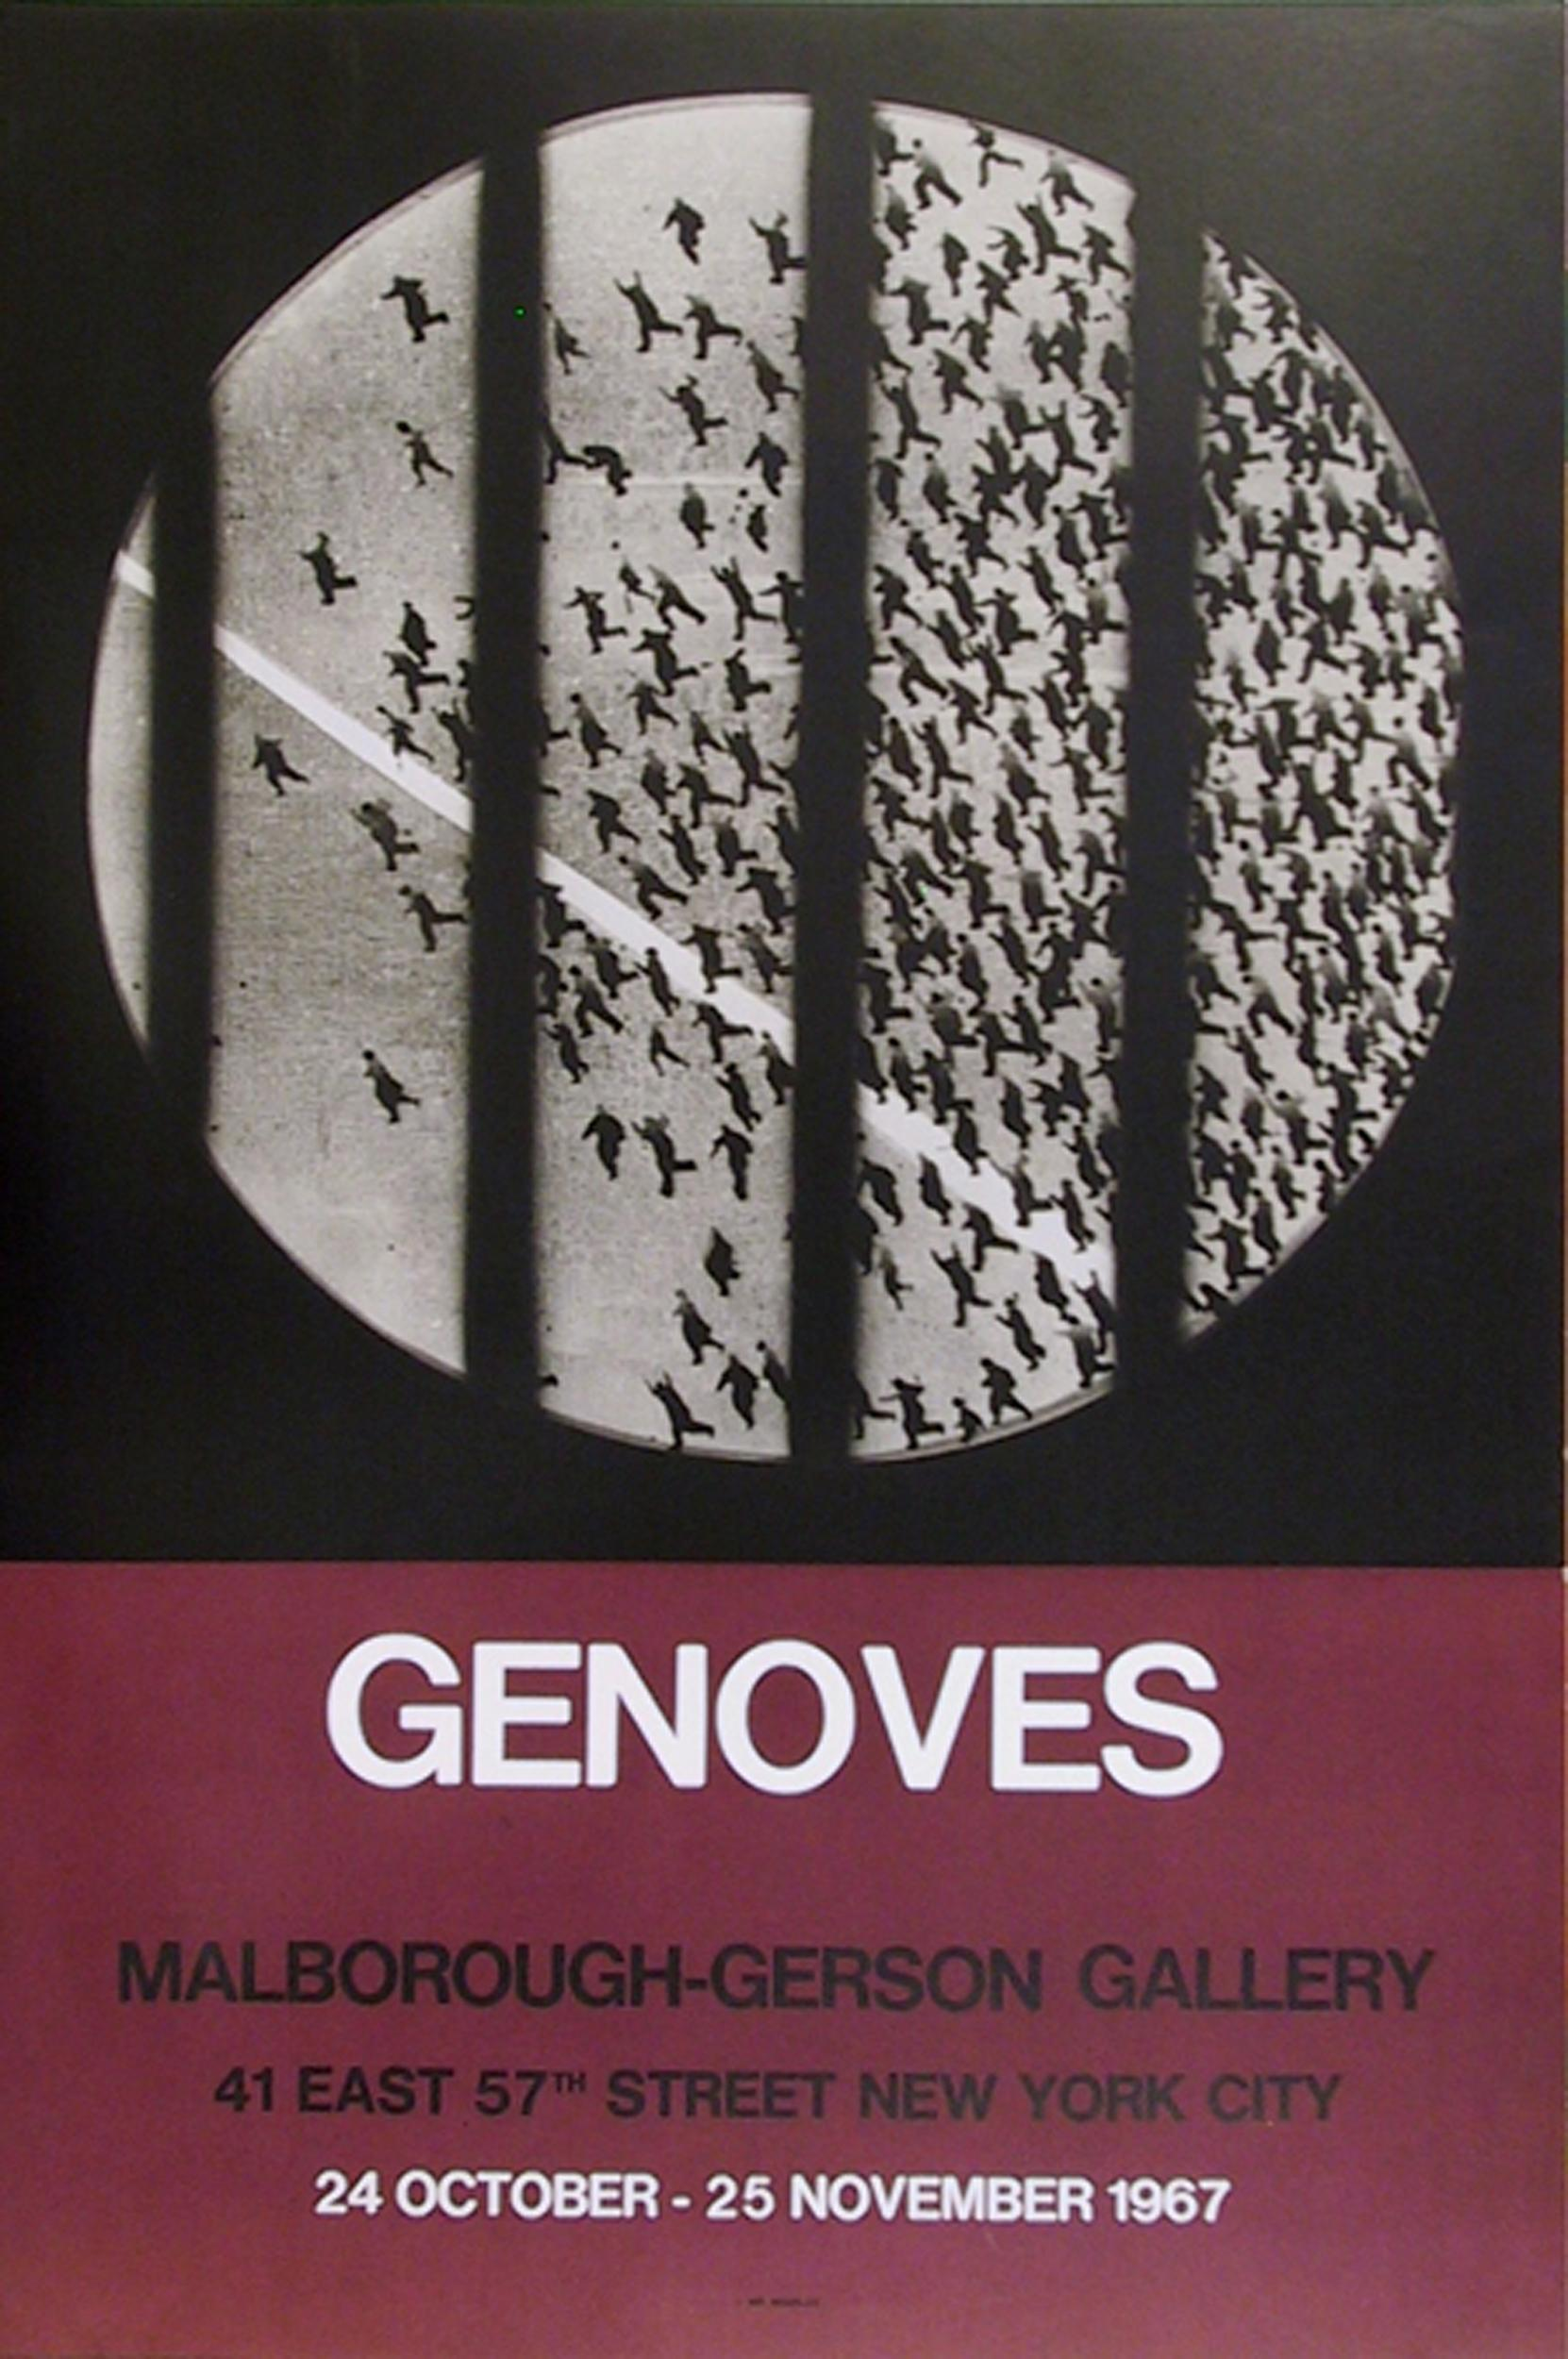 Juan Genoves, Marlborough - Gerson Gallery, Poster